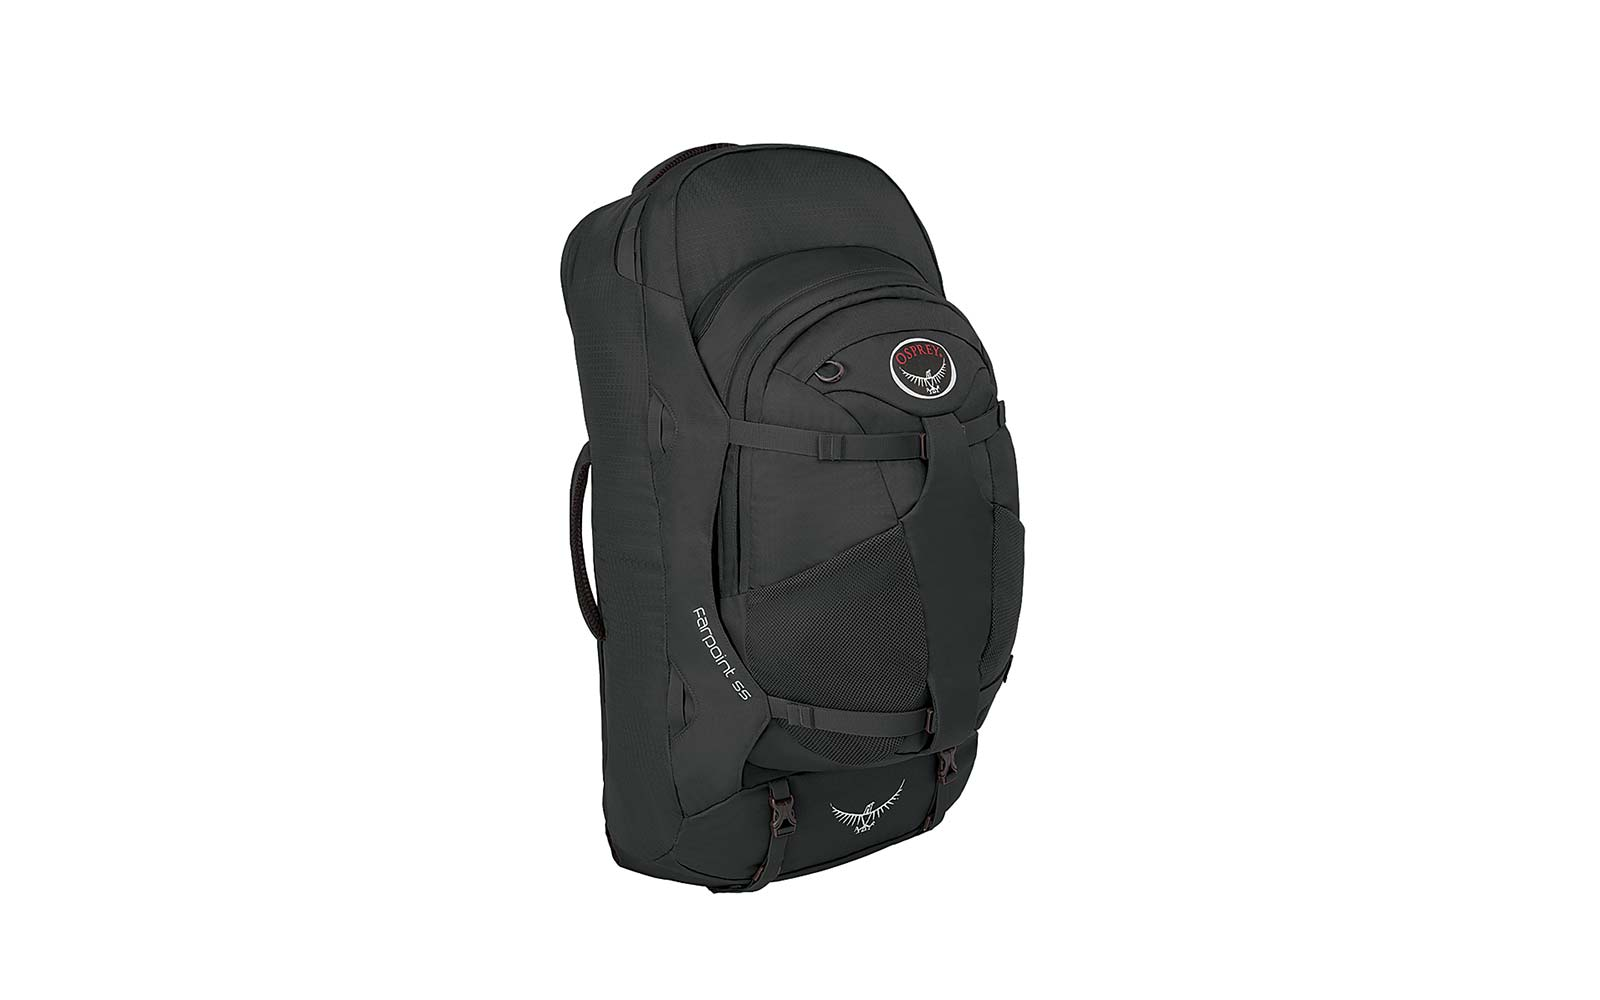 230d42345d The Best Travel Bags  Carry-on